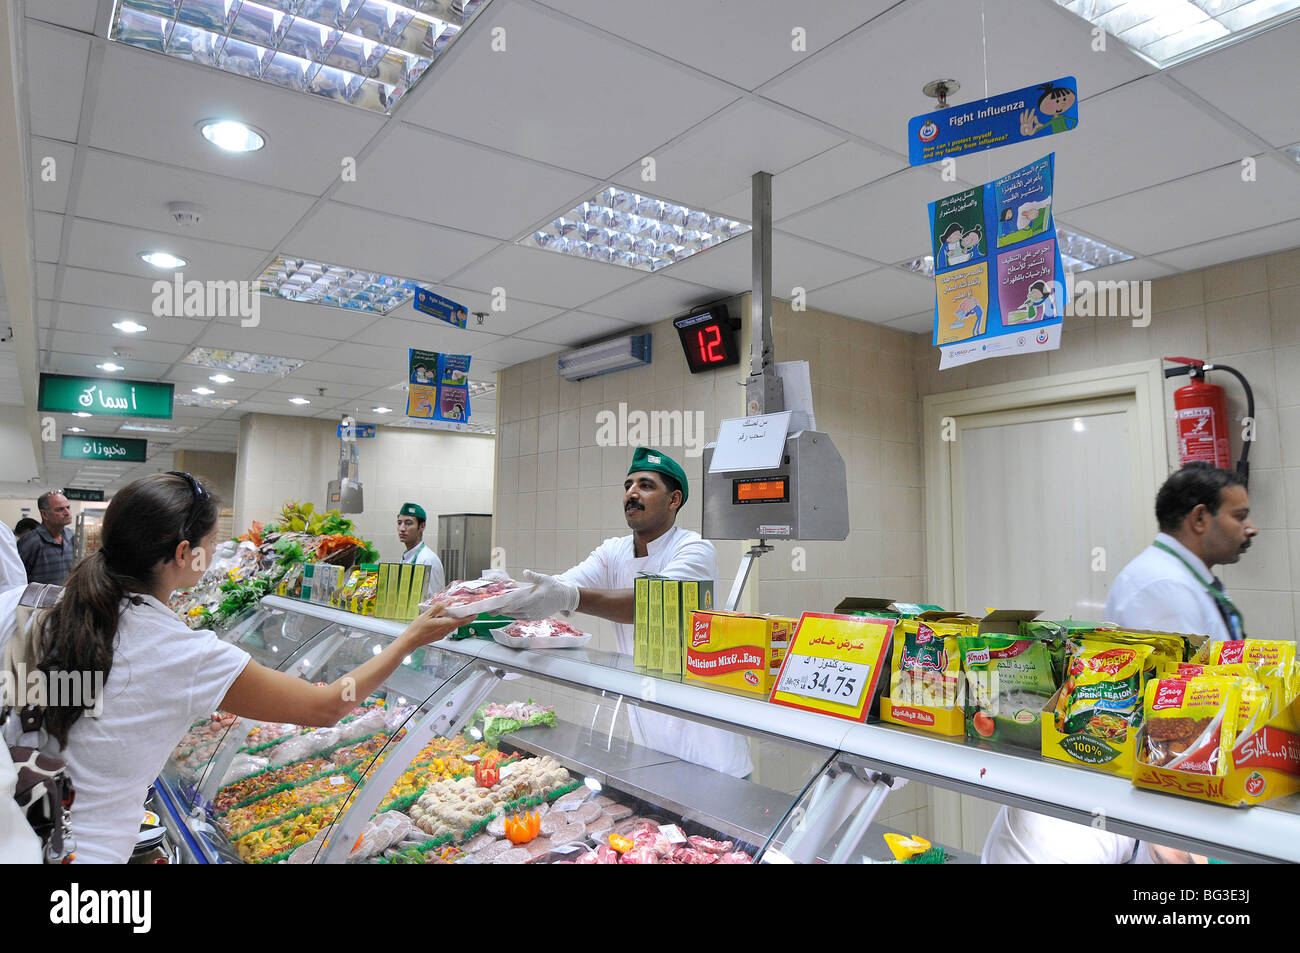 People are shopping in a supermarket in cairo stock photo for Shopping in cairo